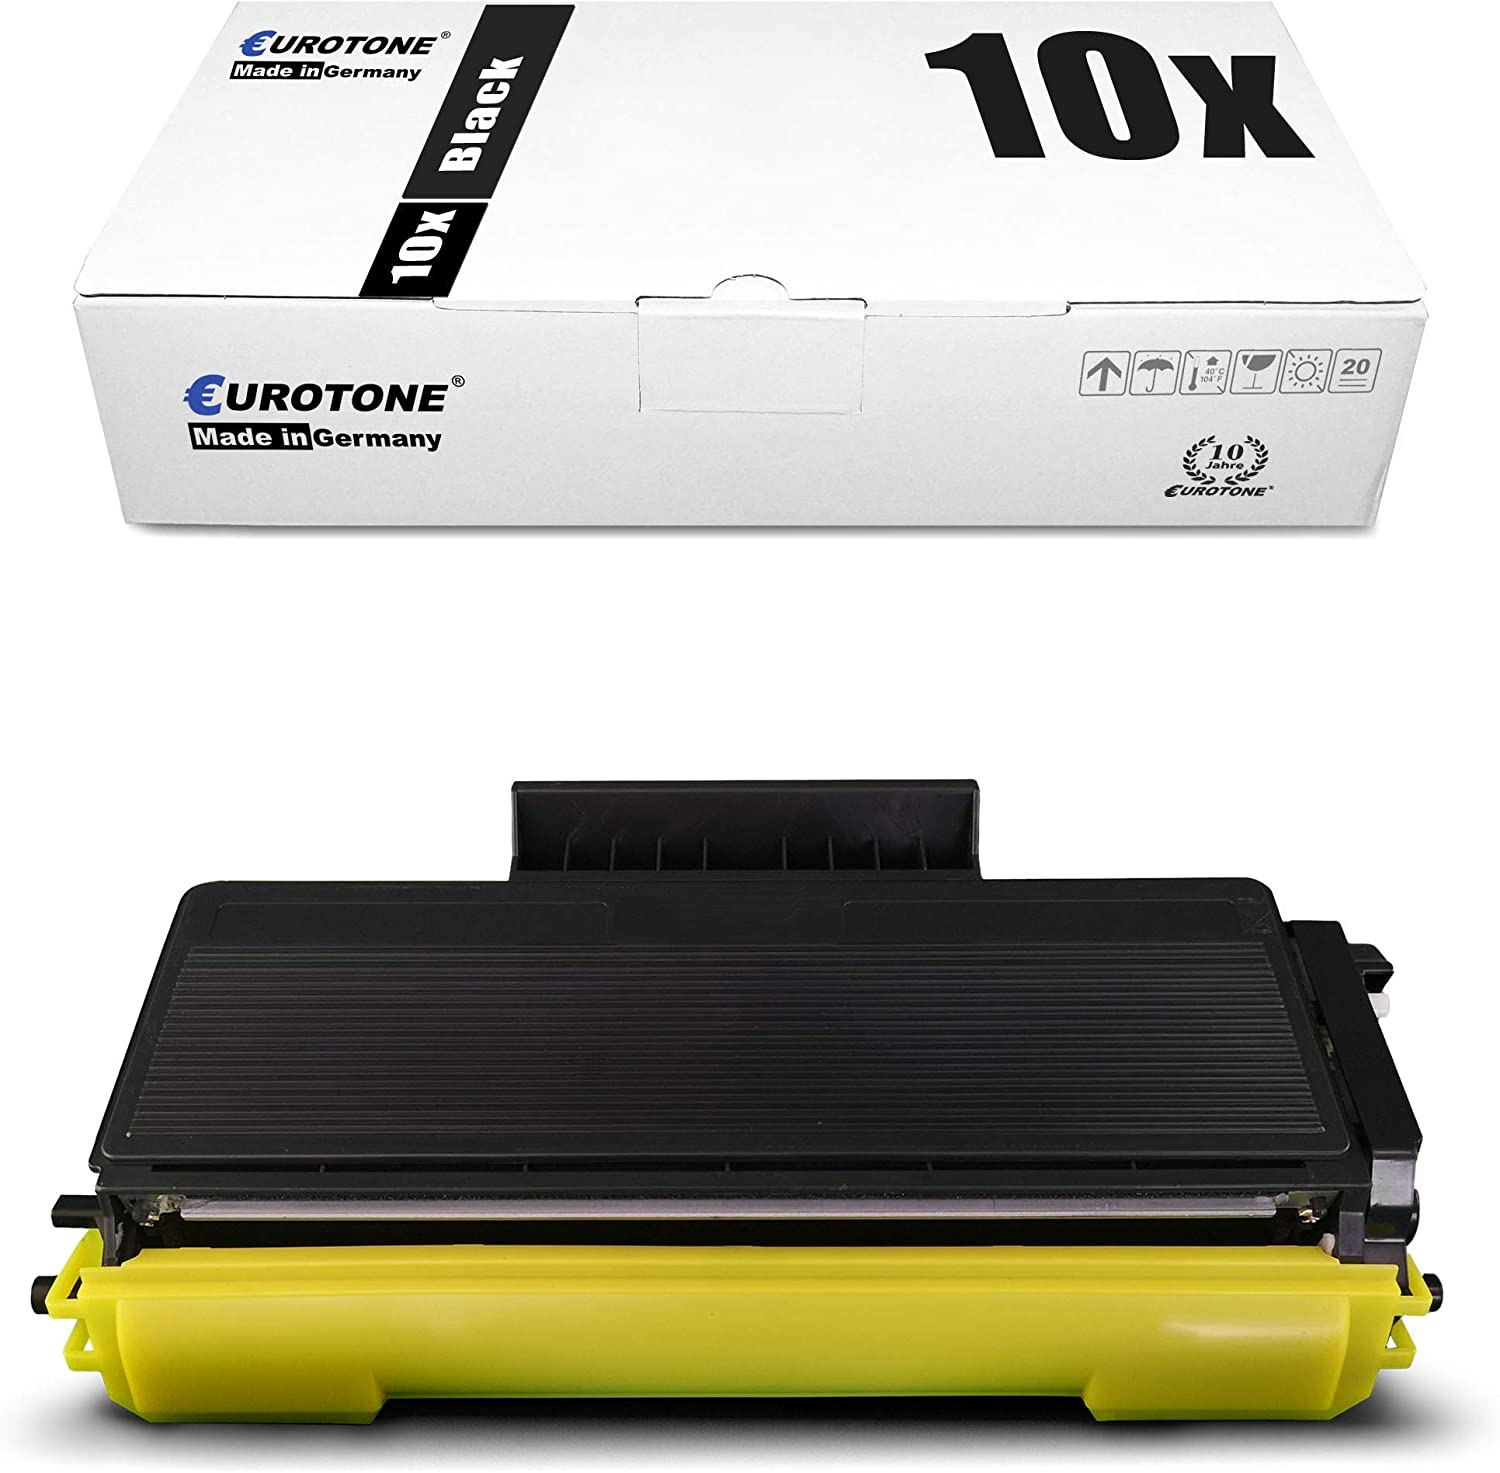 10x Eurotone XXL Toner for Brother DCP 8070 8080 8085 8880 8890 DW D DN Replaces TN3280